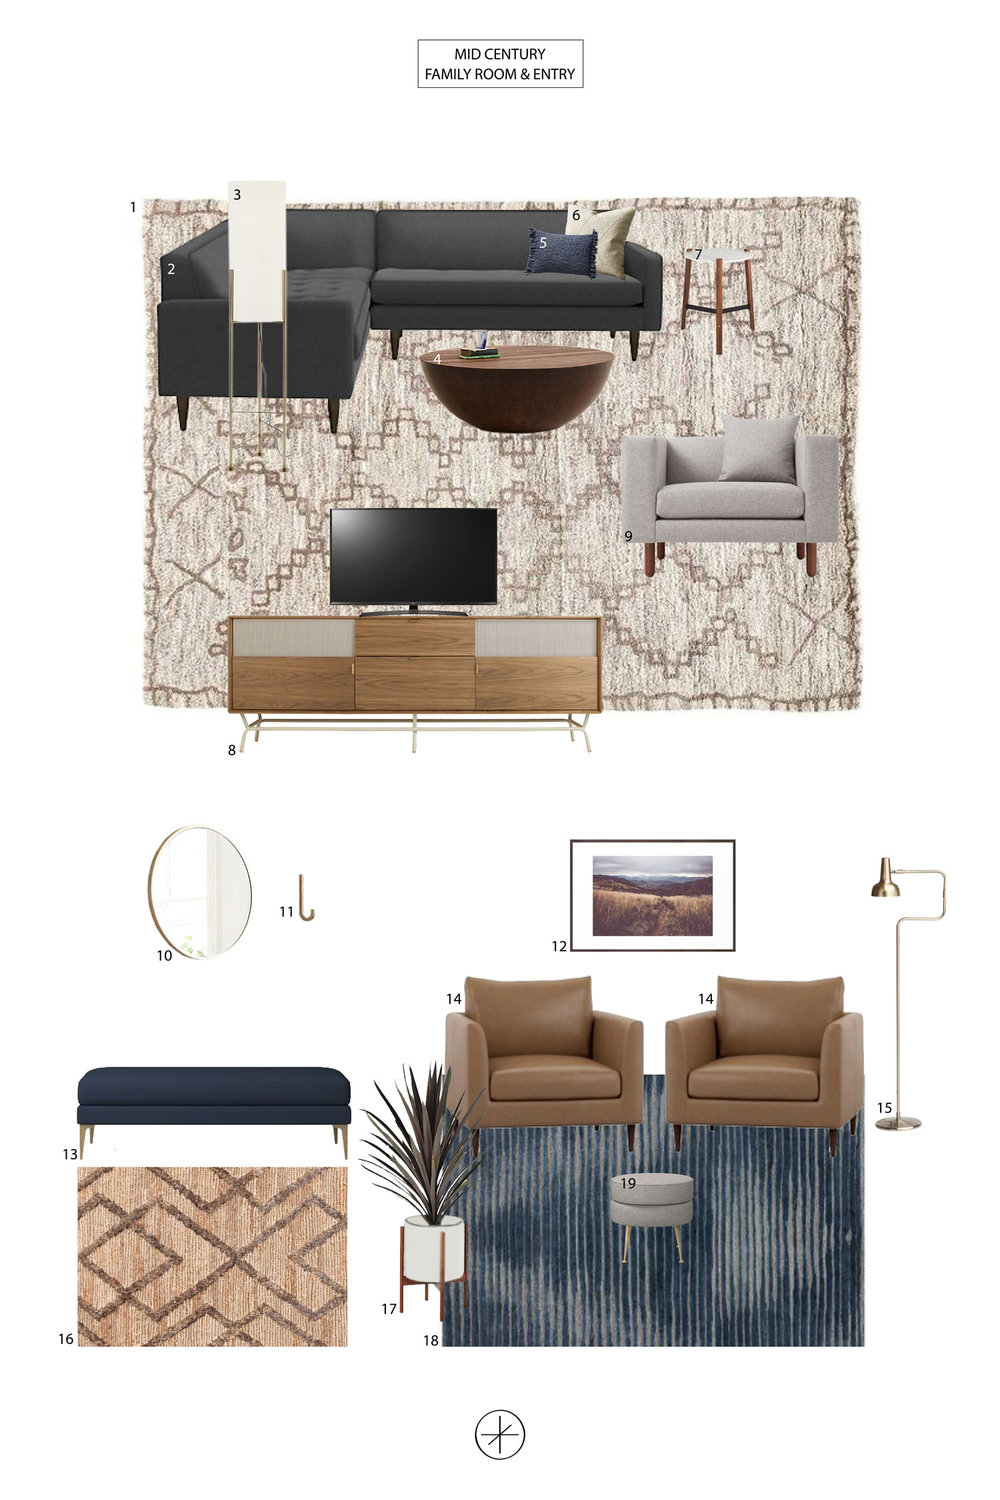 Mid Century Family Room & Entry by Casework Interior Design